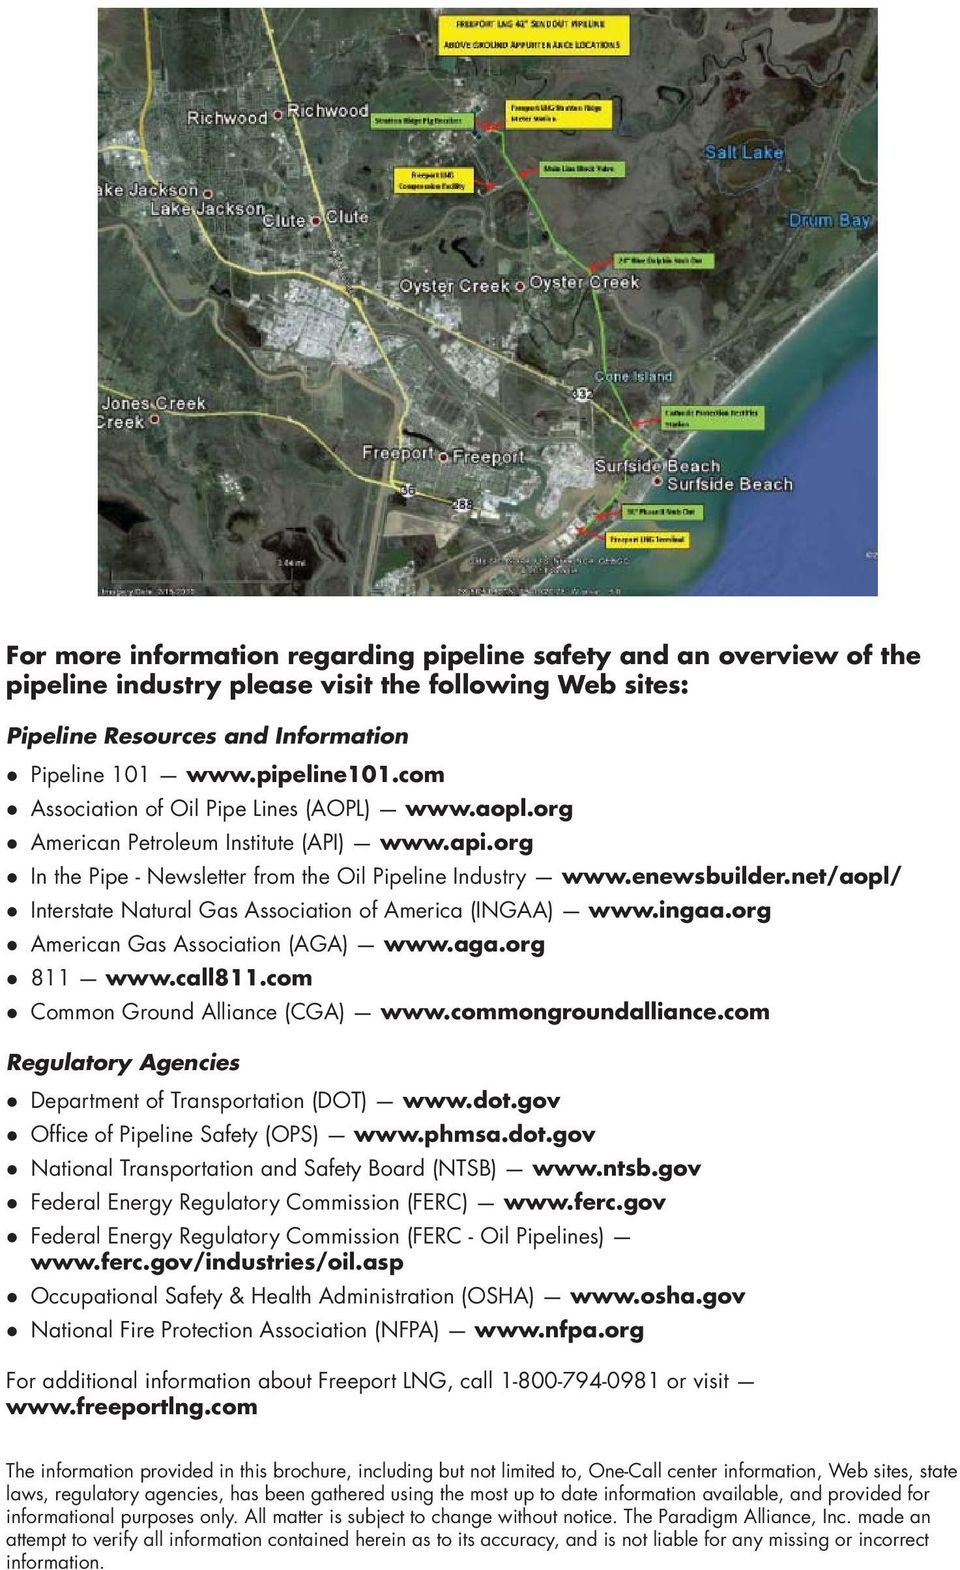 net/aopl/ Interstate Natural Gas Association of America (INGAA) www.ingaa.org American Gas Association (AGA) www.aga.org 811 www.call811.com Common Ground Alliance (CGA) www.commongroundalliance.